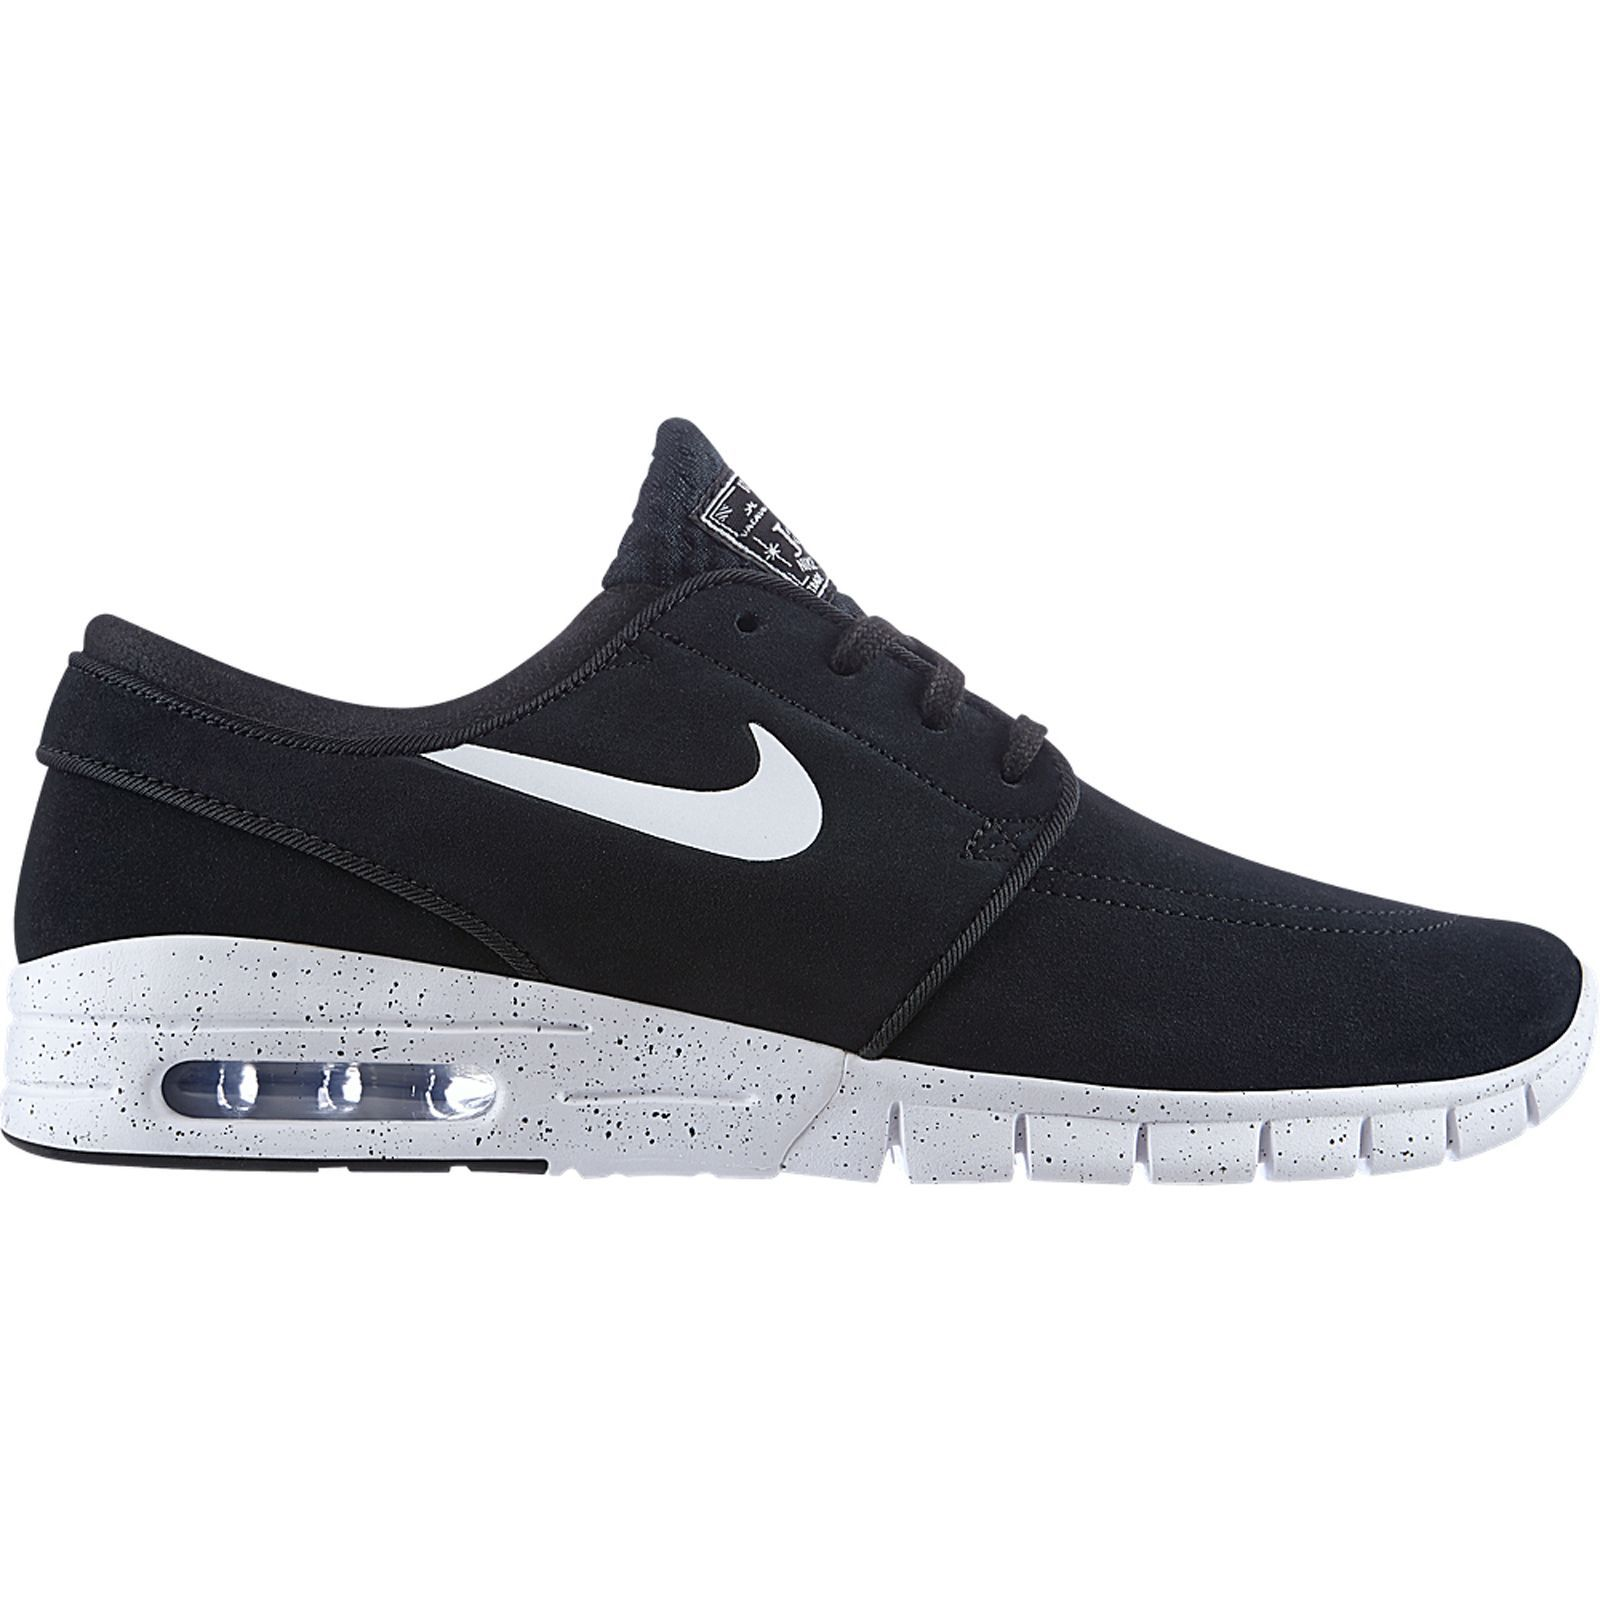 nike stefan janoski max turnschuhe sneakers schwarz. Black Bedroom Furniture Sets. Home Design Ideas